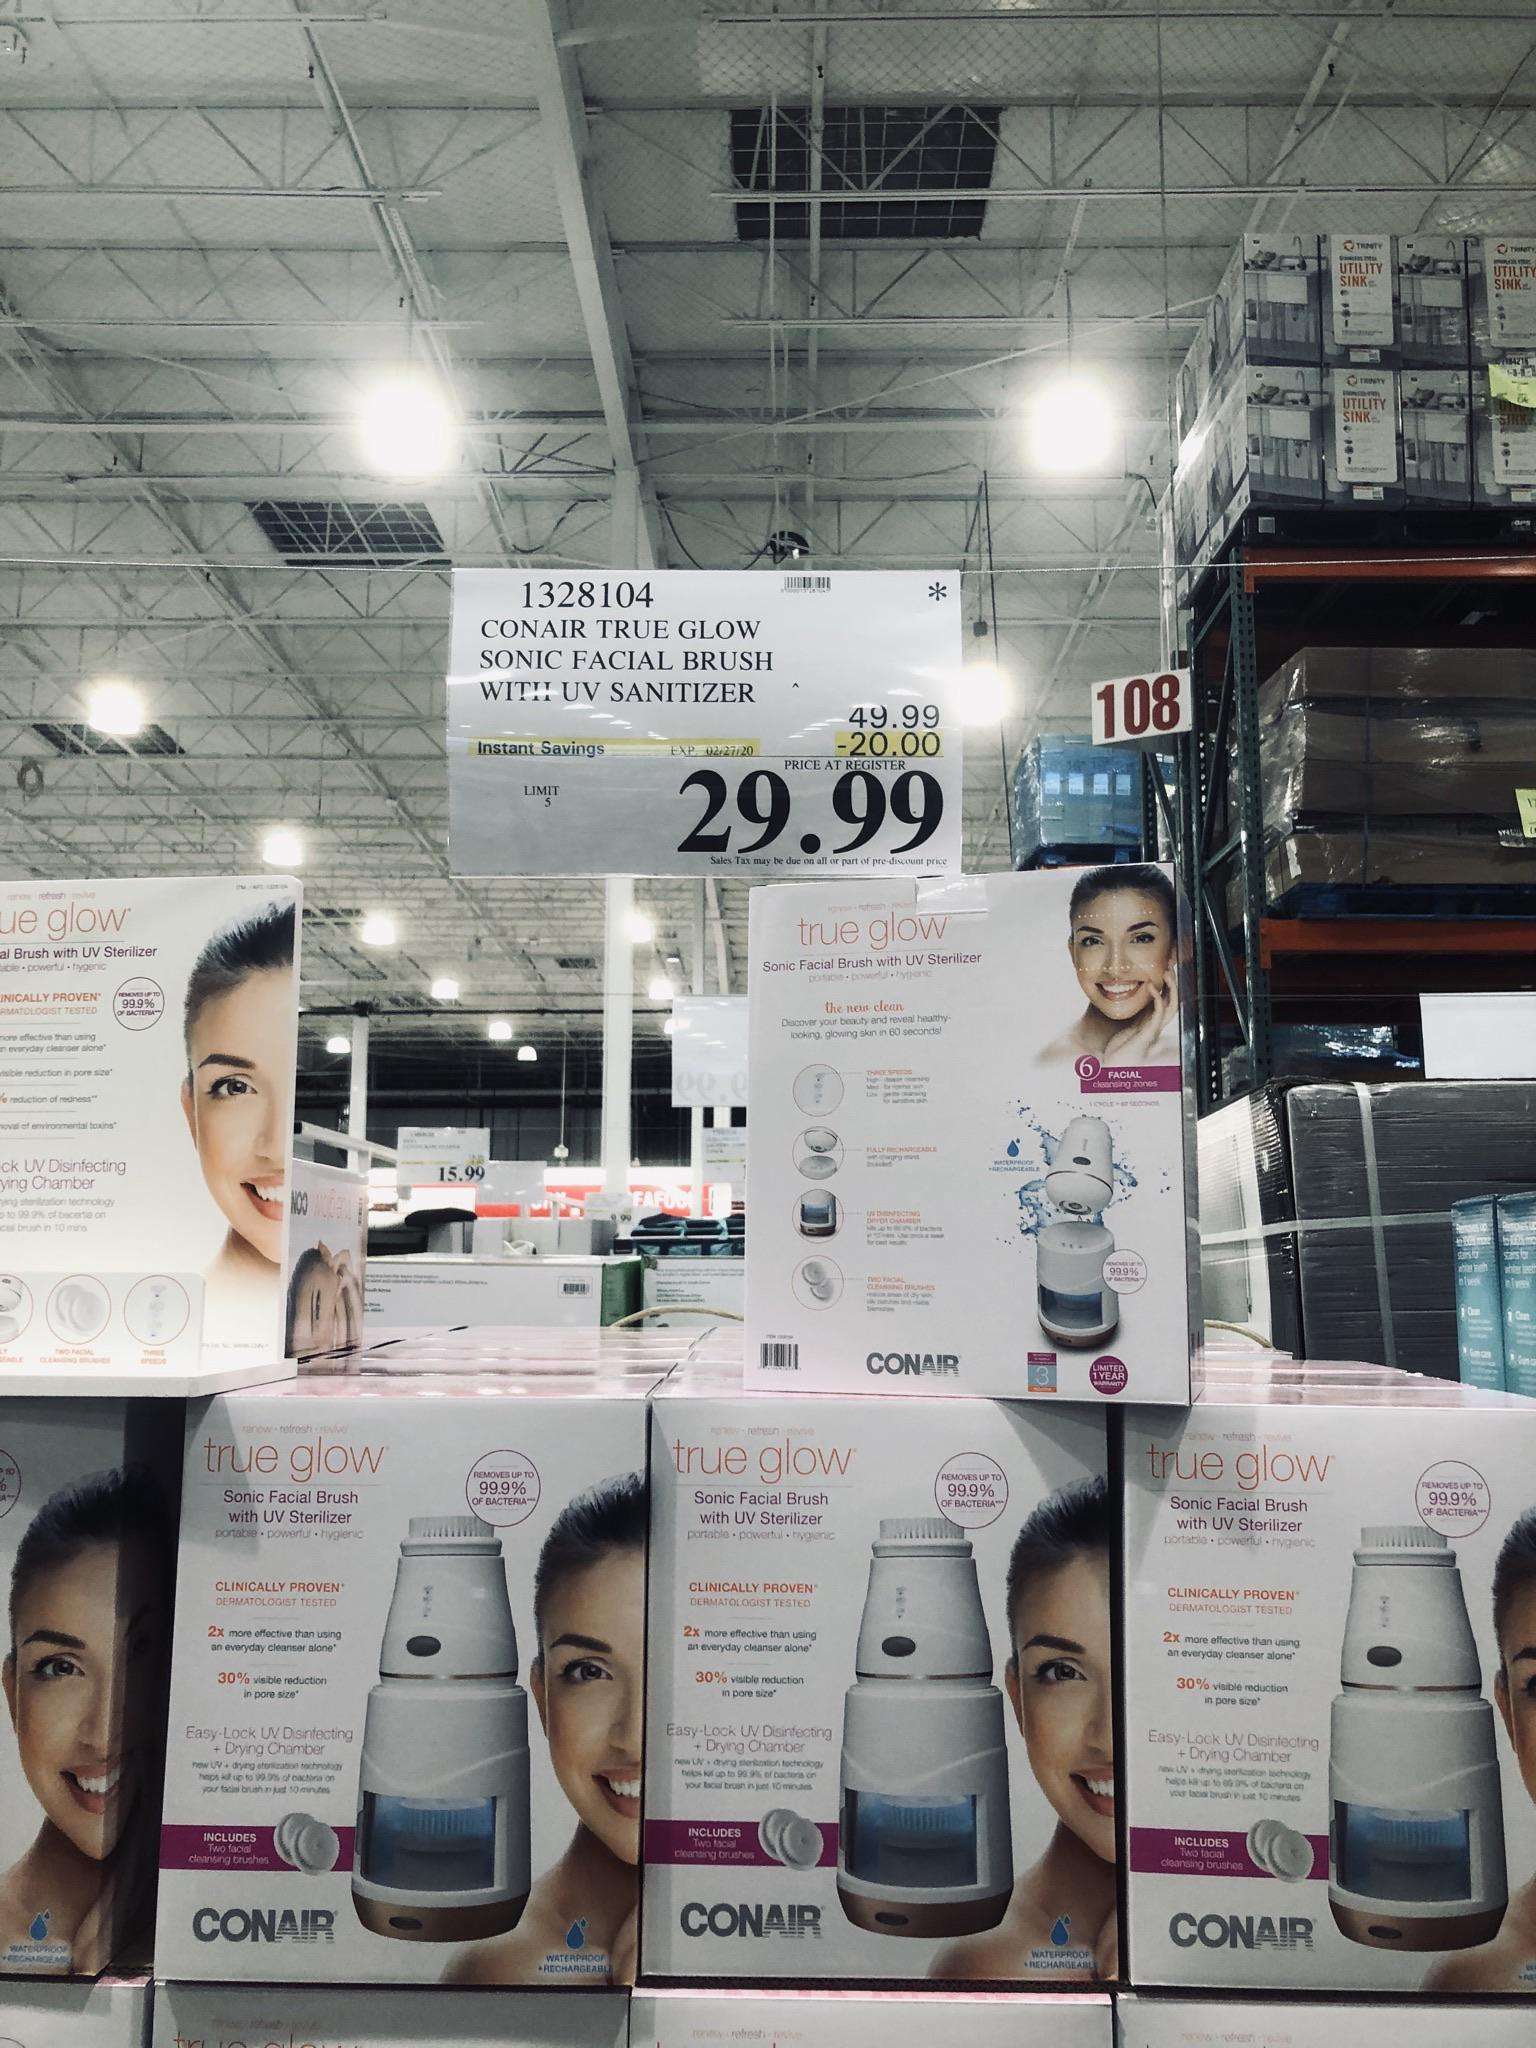 Conair Face Brush Costco : conair, brush, costco, Product, Question], Thoughts, Facial, Brush, Sanitizer, Costco, Selling?, SkincareAddiction